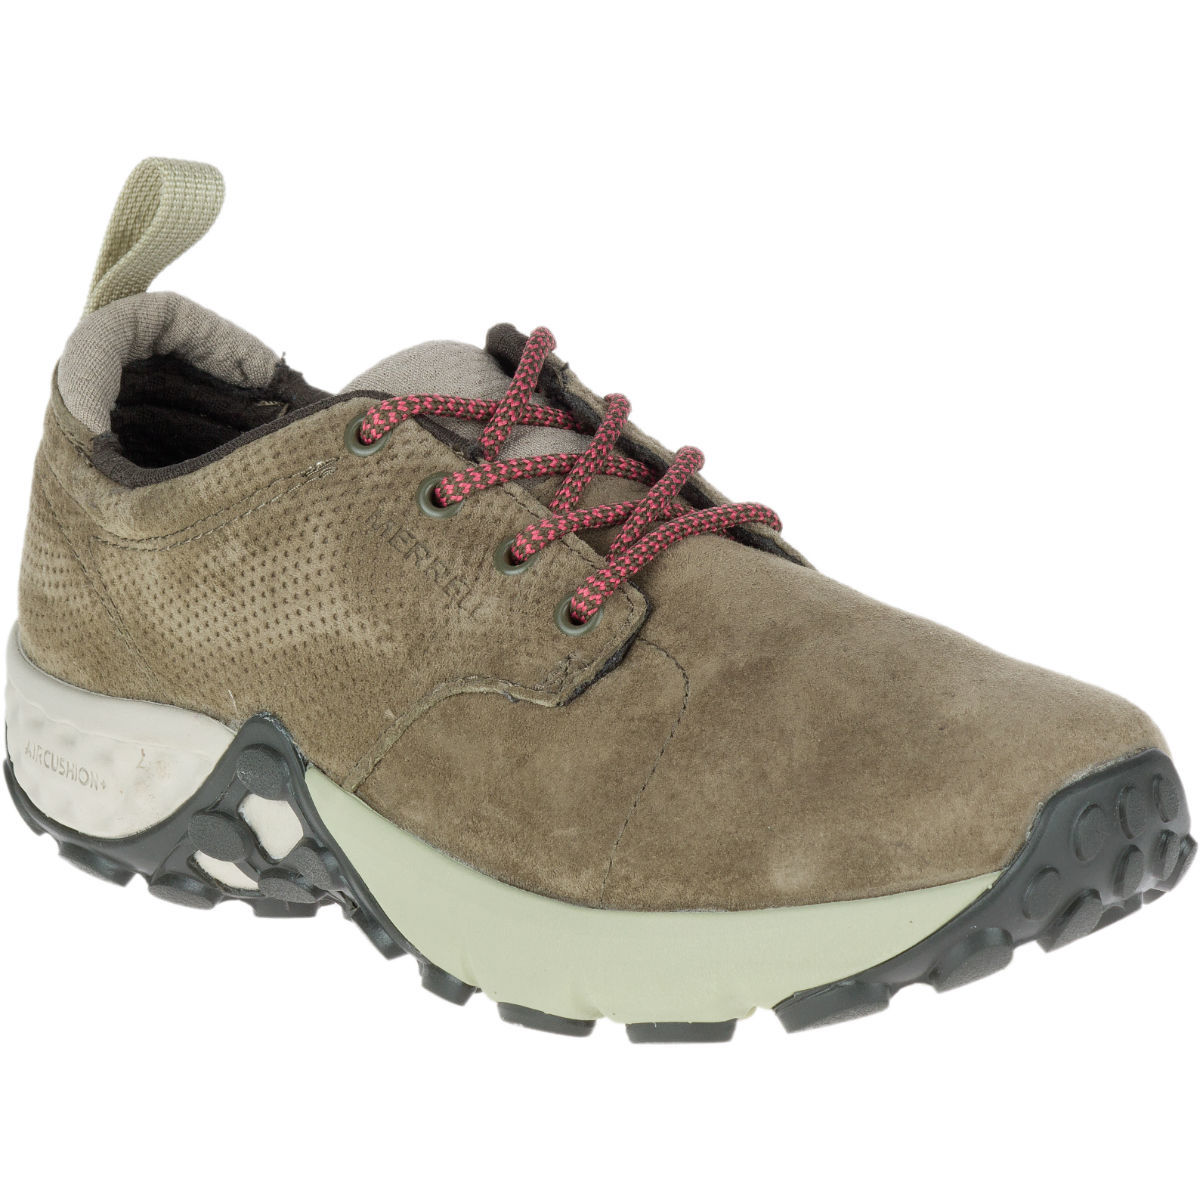 Merrell Women's Jungle Lace Ac+ Hiking Shoes, Dusty Olive - Green, 6.5